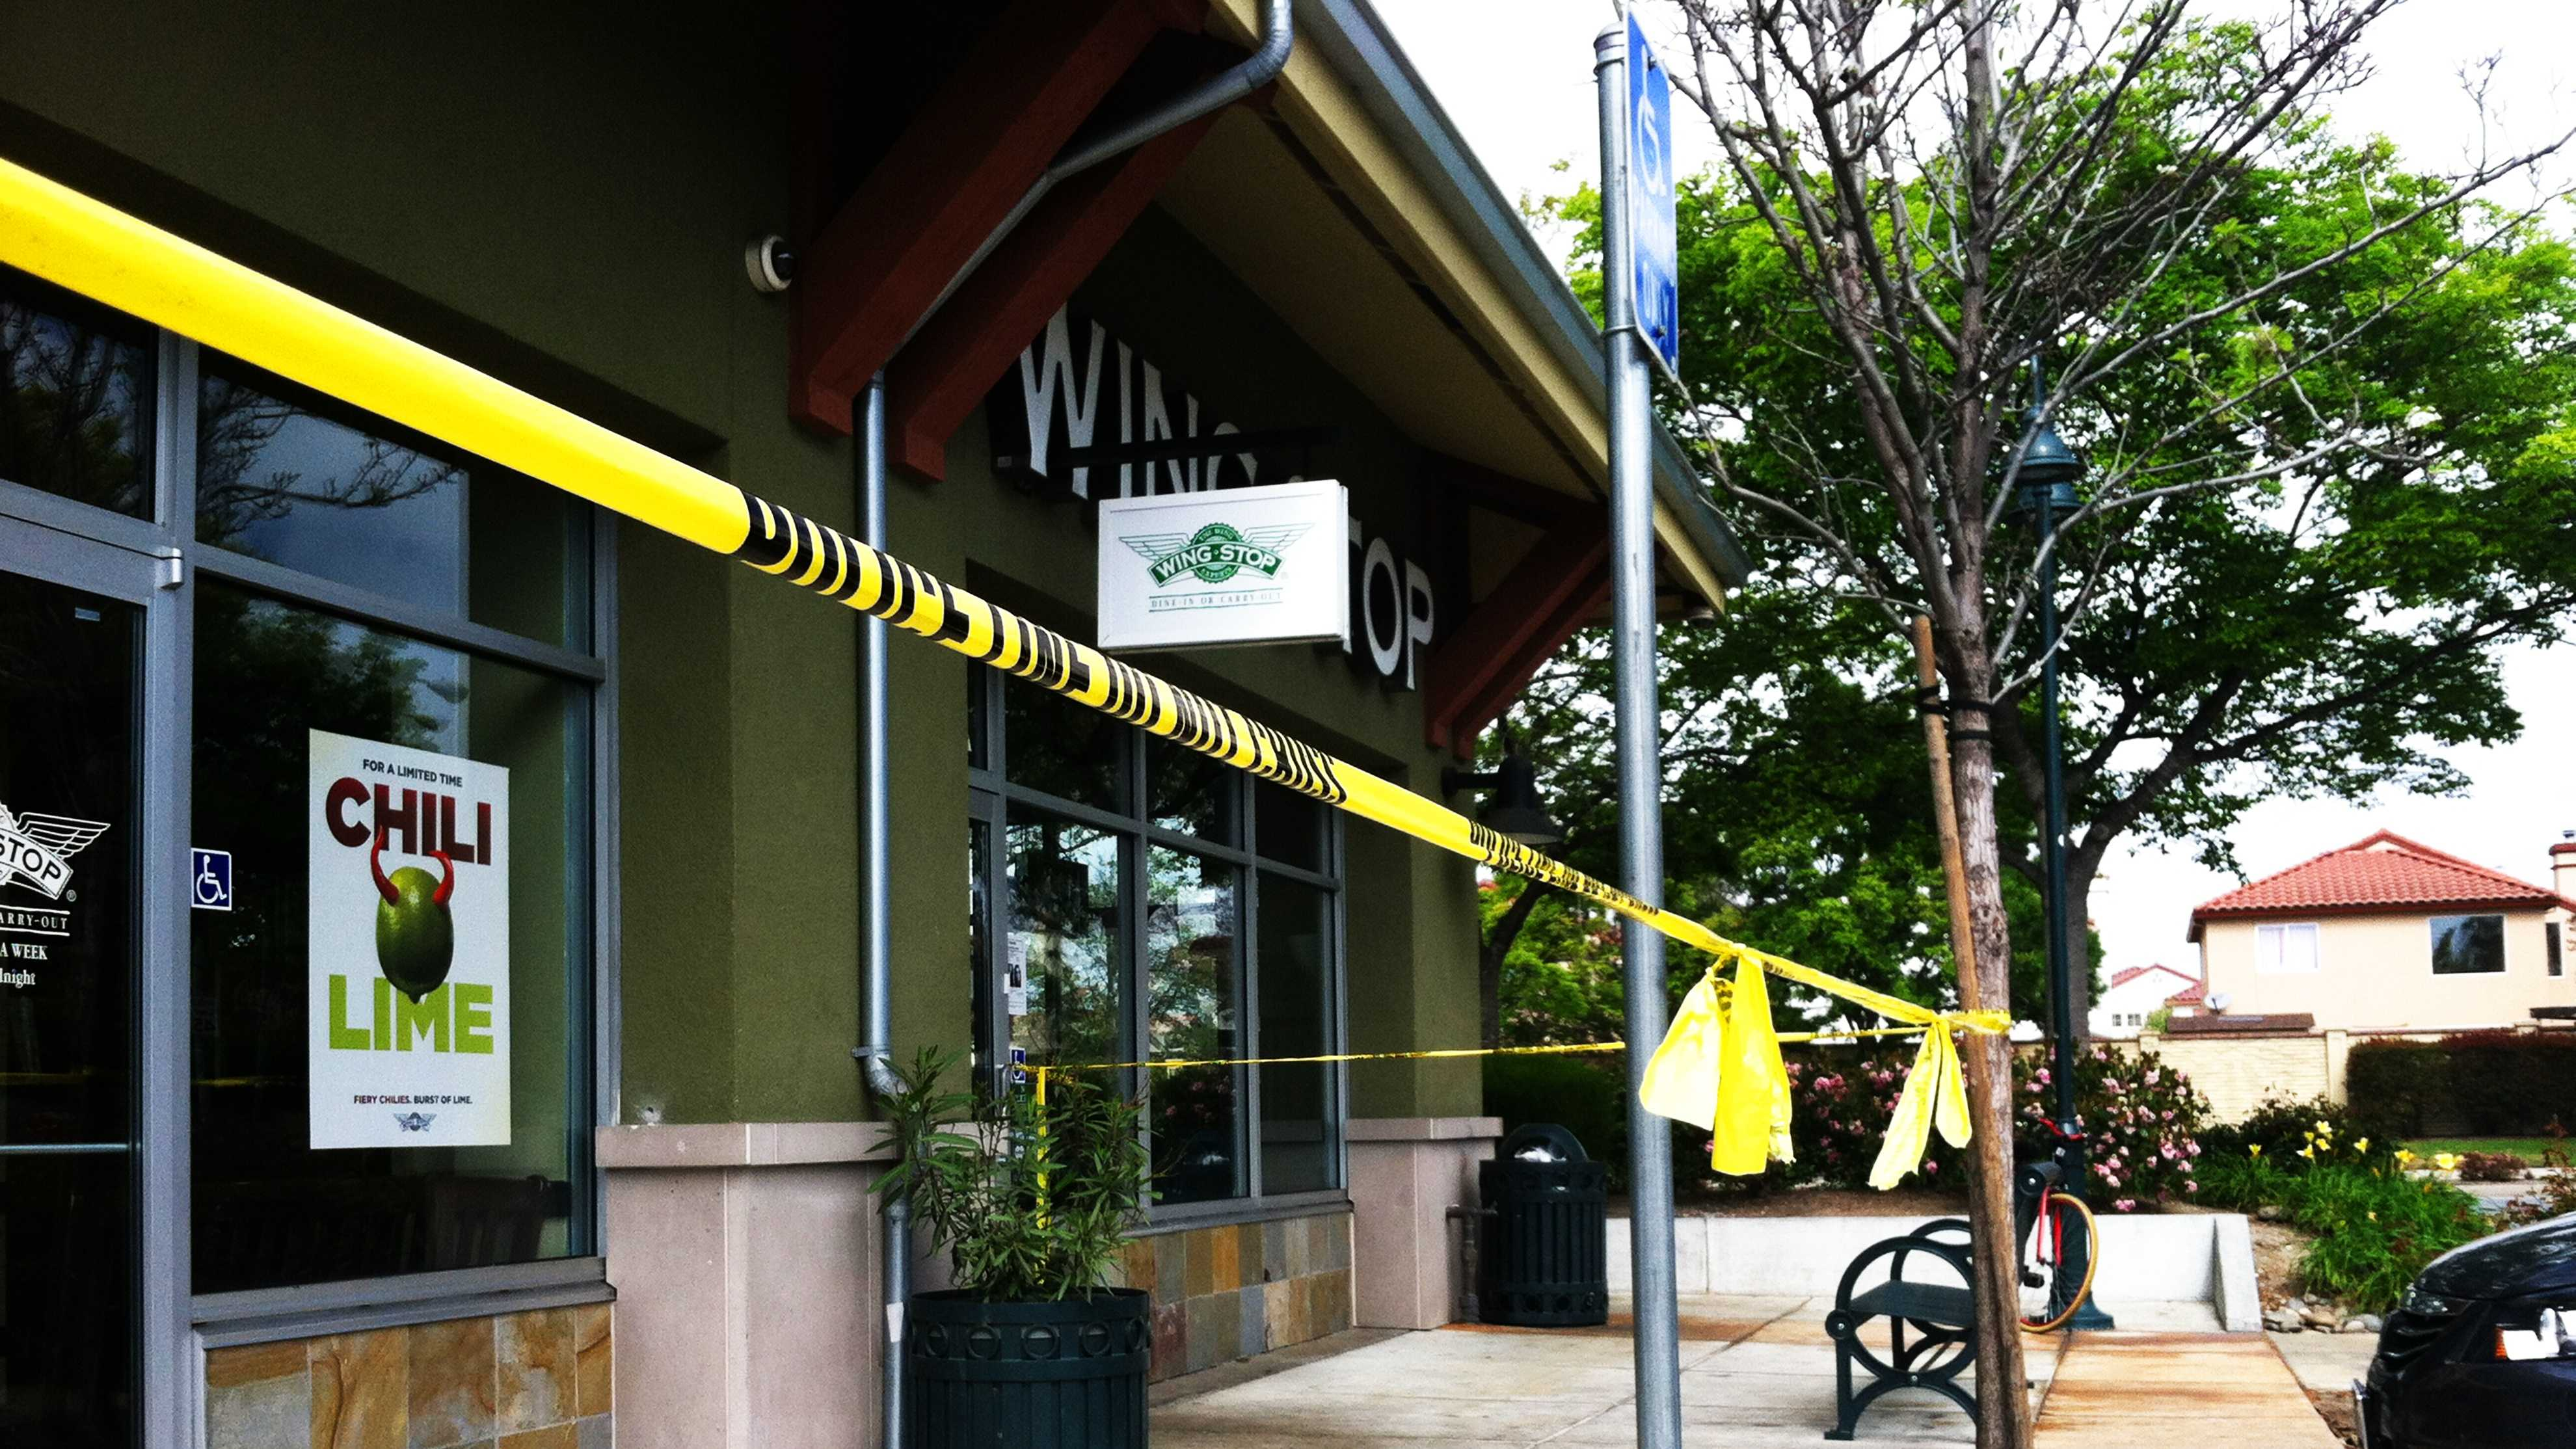 Salinas police killed a man outside this Wing Stop. (March 21, 2014)